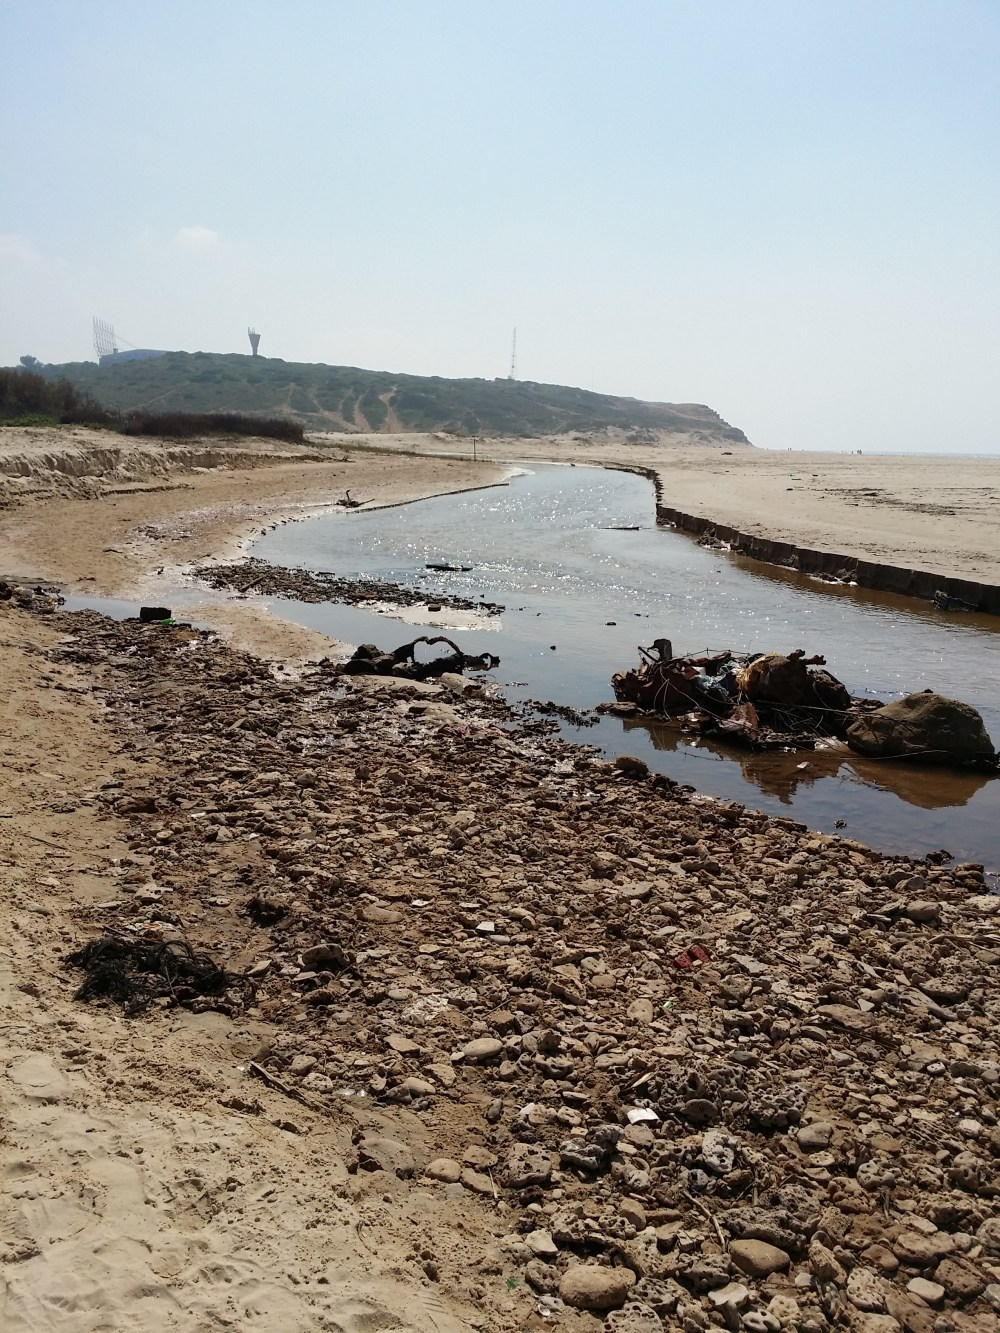 Heavily polluted Israeli stream cuts beach in half